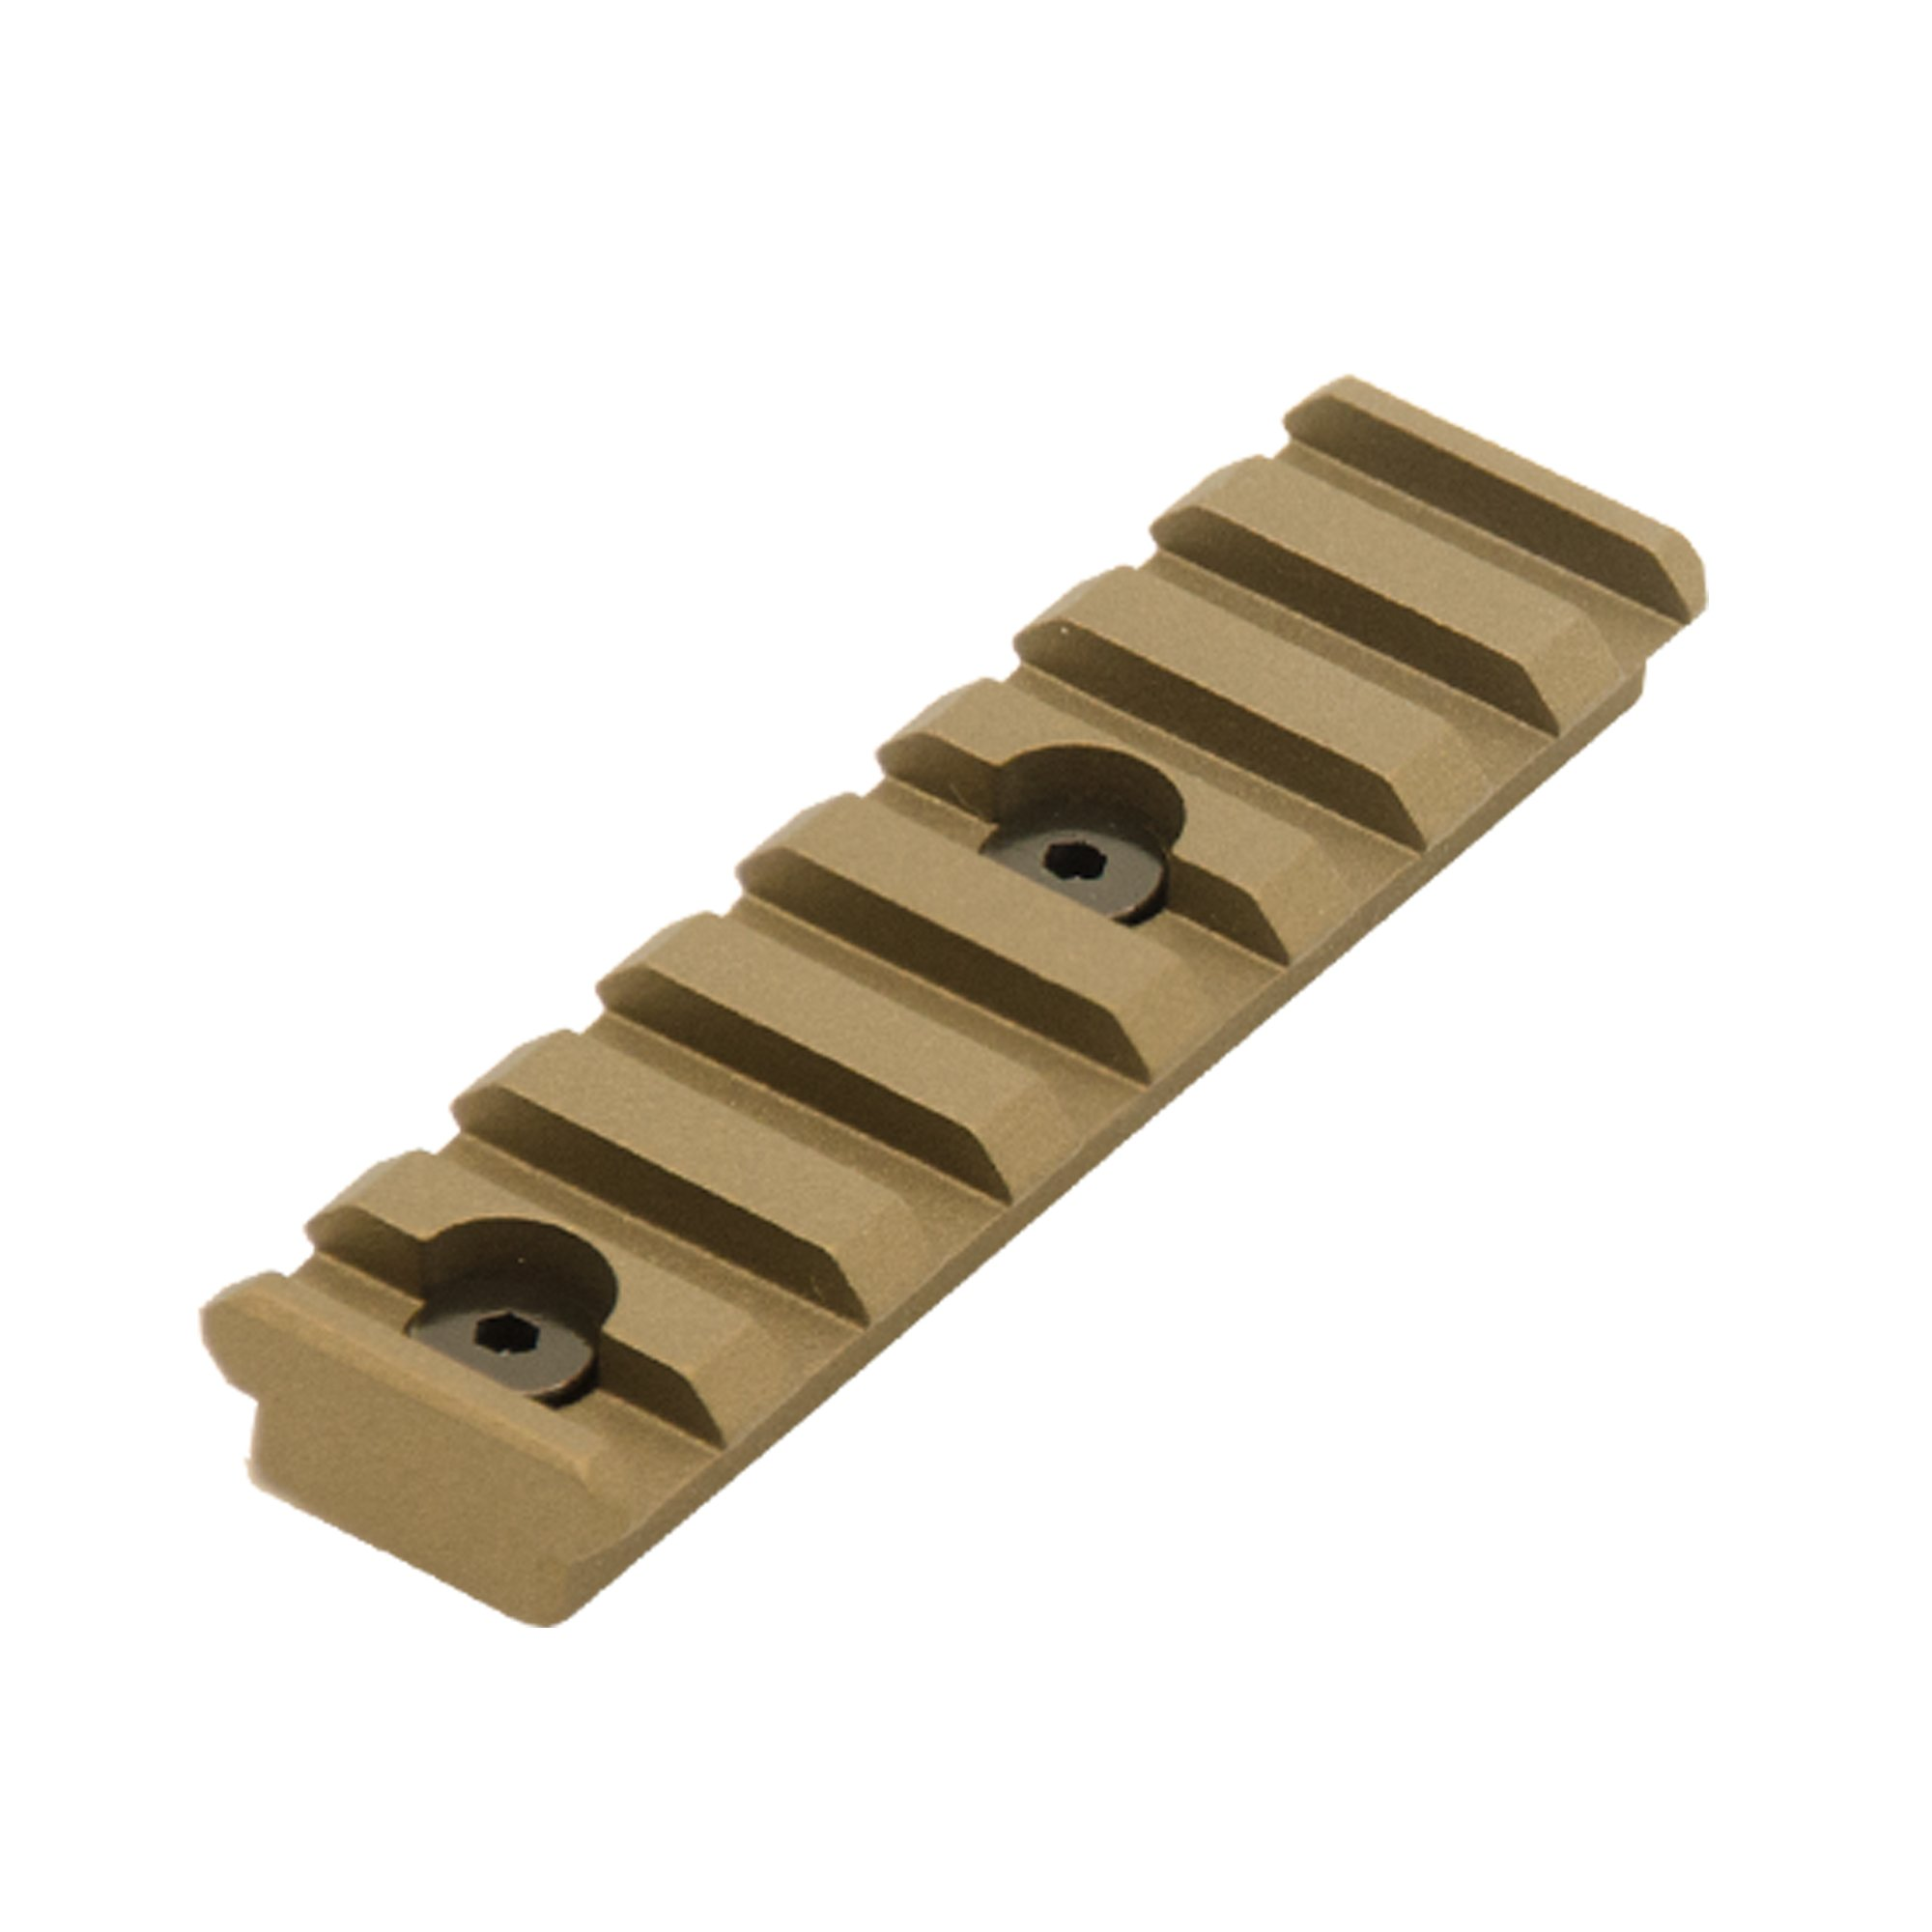 UTG PRO 8-Slot Keymod Picatinny Rail Section-Burnt Bronze by UTG Pro